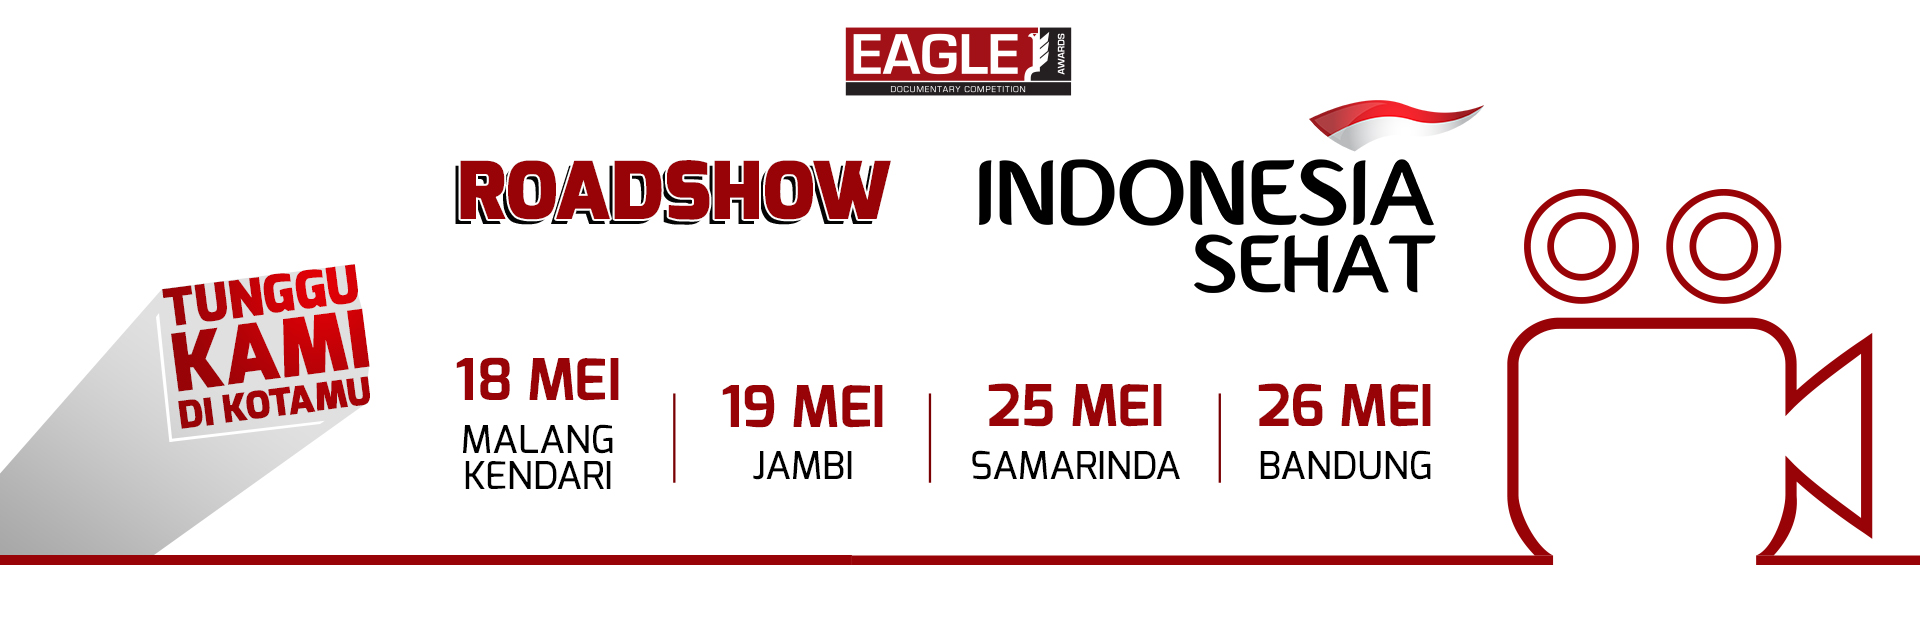 ROADSHOW EADC 2016